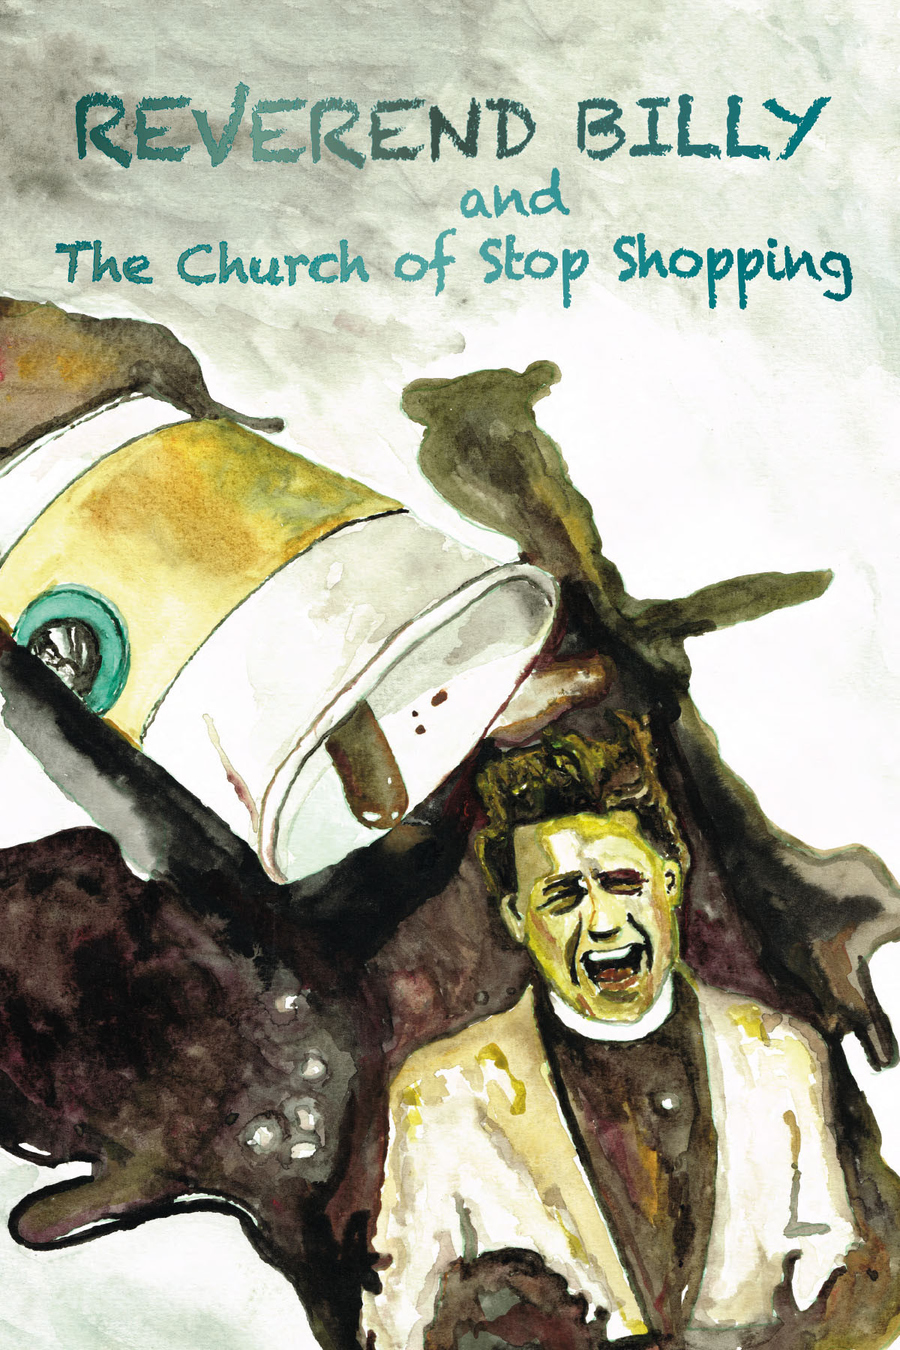 Reverend Billy & The Church of Stop Shopping